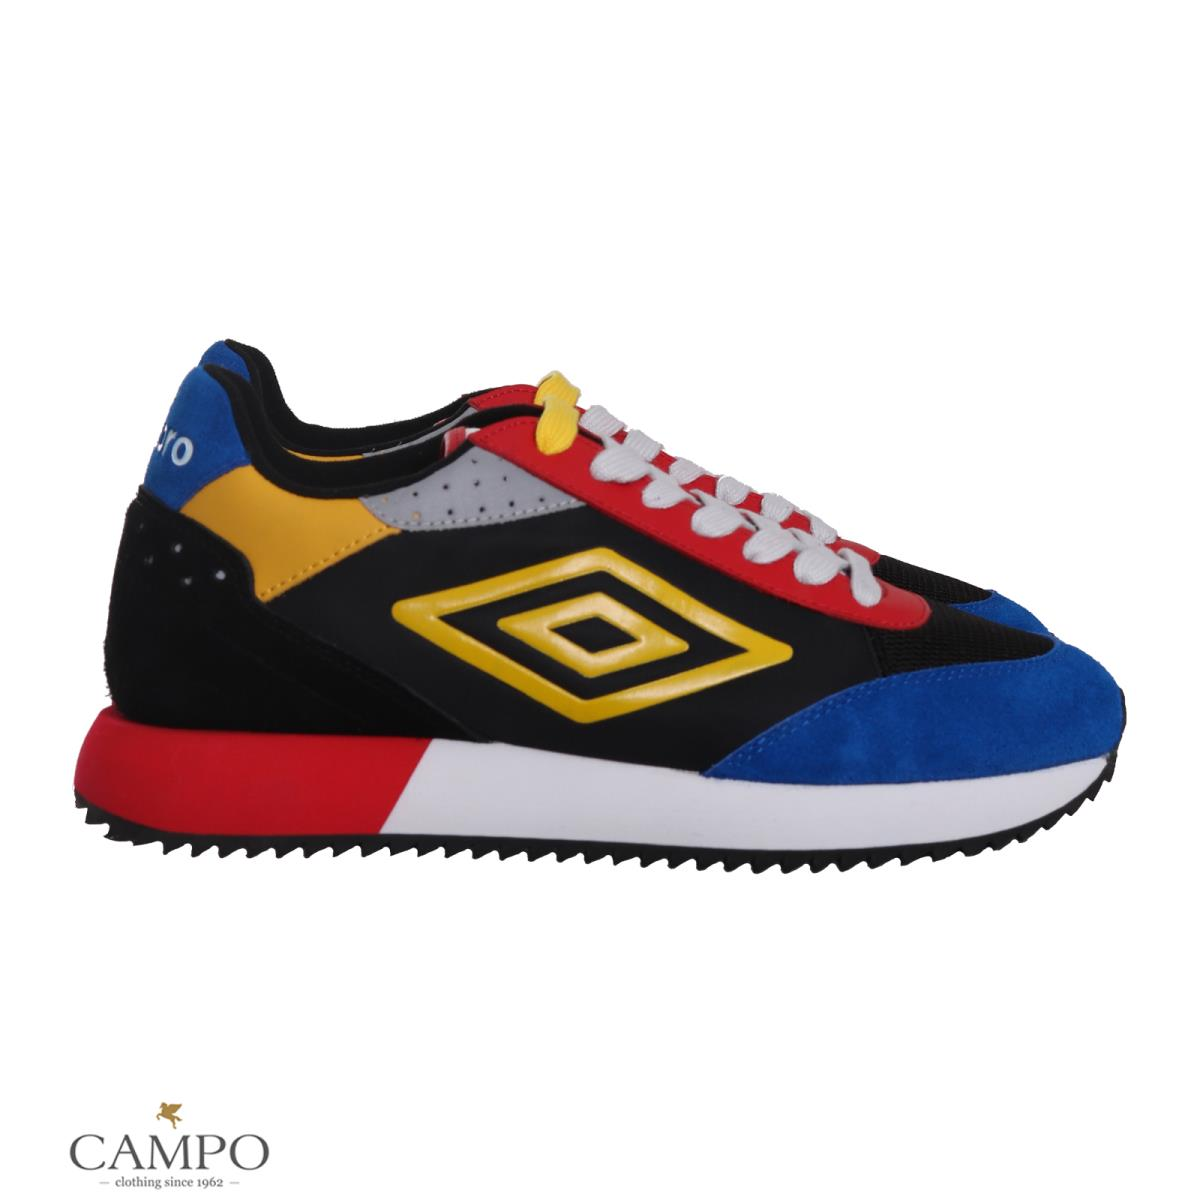 wholesale dealer a487b 12dfb Umbro Scarpe u181910mu-m